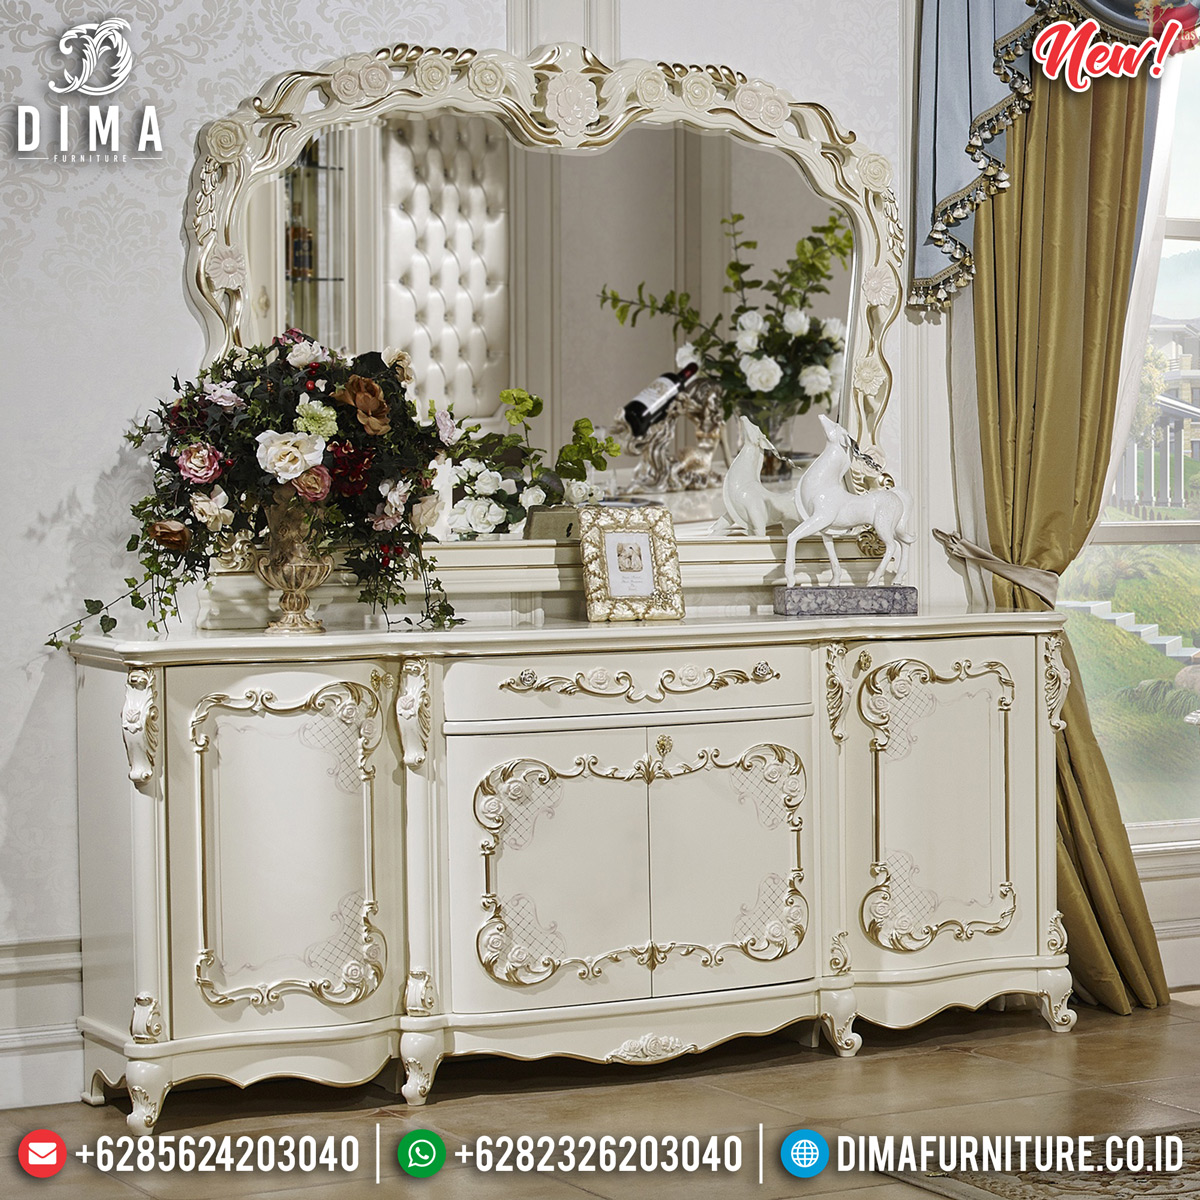 Jual Meja Rias Mewah Luxury Carving Jepara New Normal Version TTJ-0826